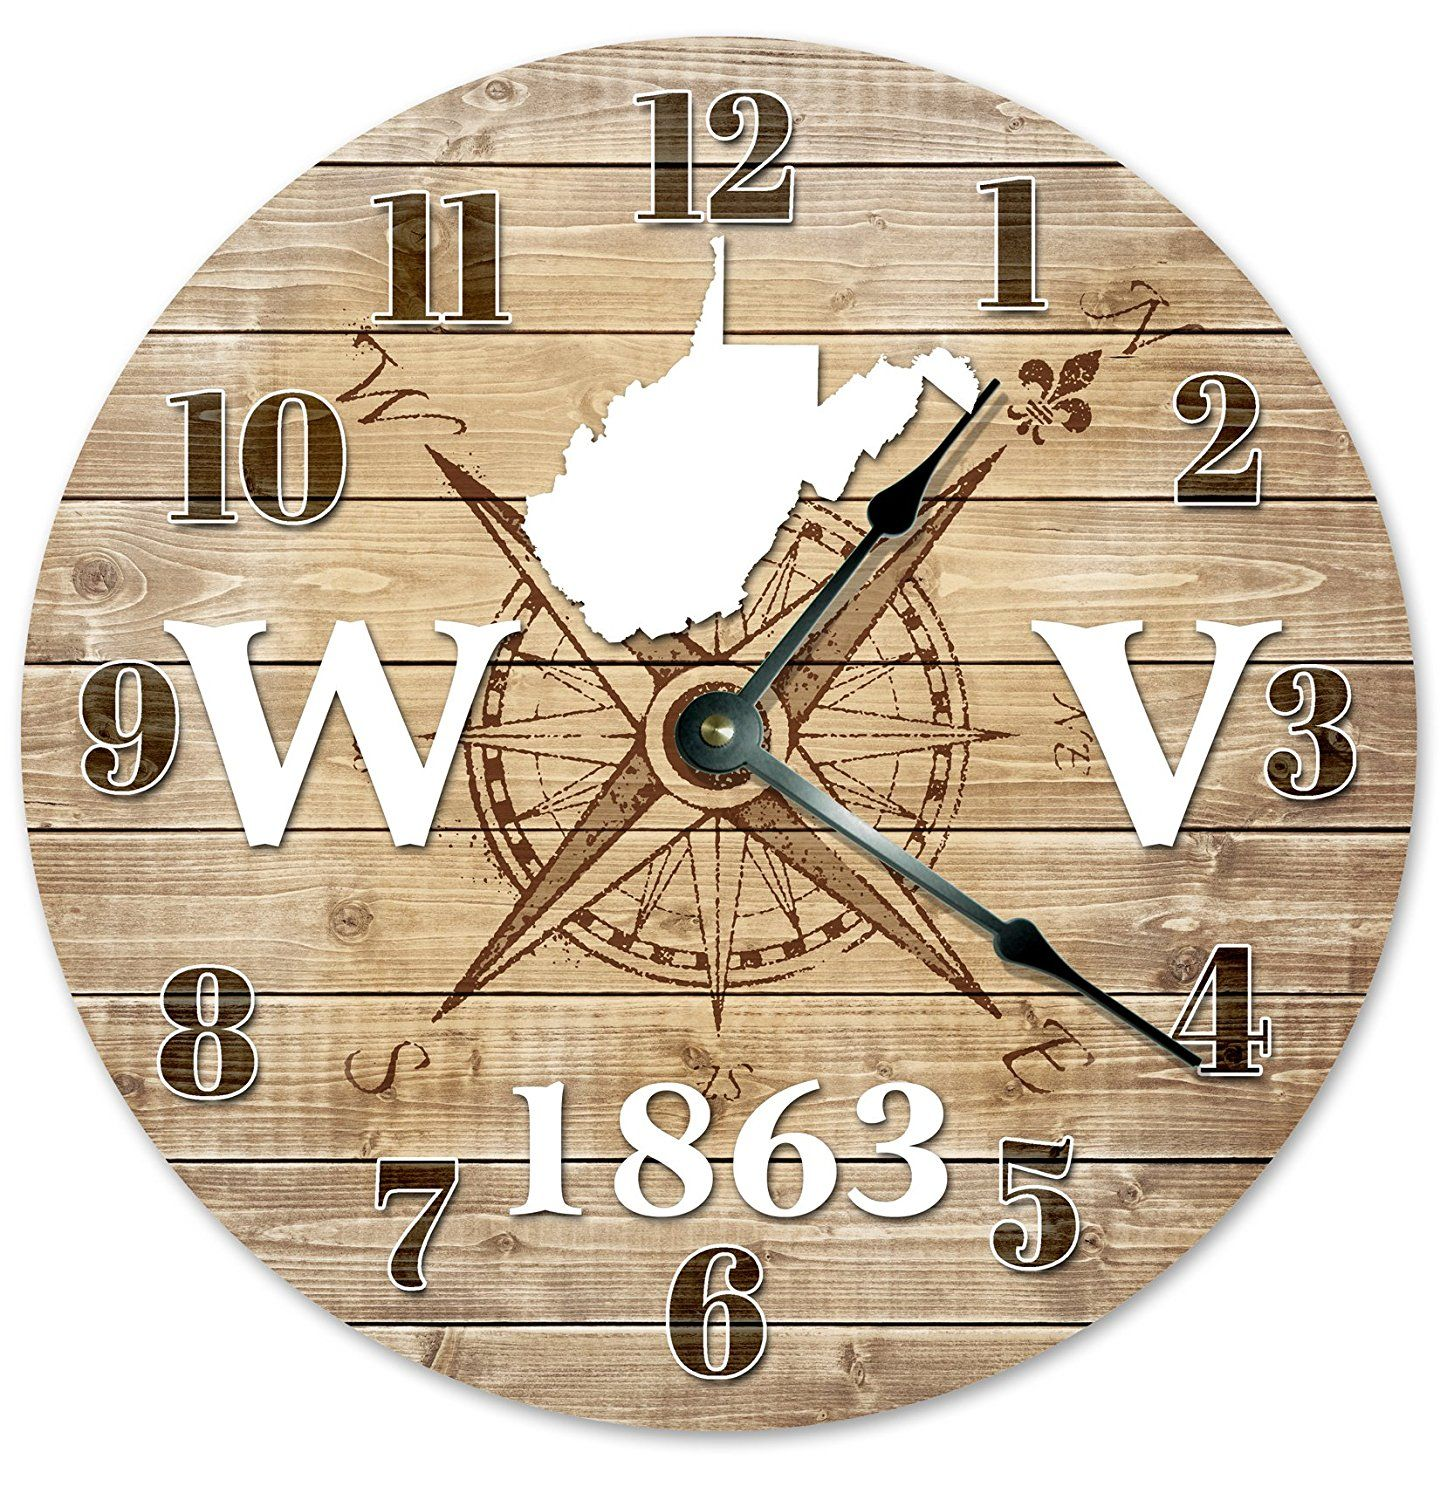 WEST VIRGINIA Established in 1863 Decorative Round Wall